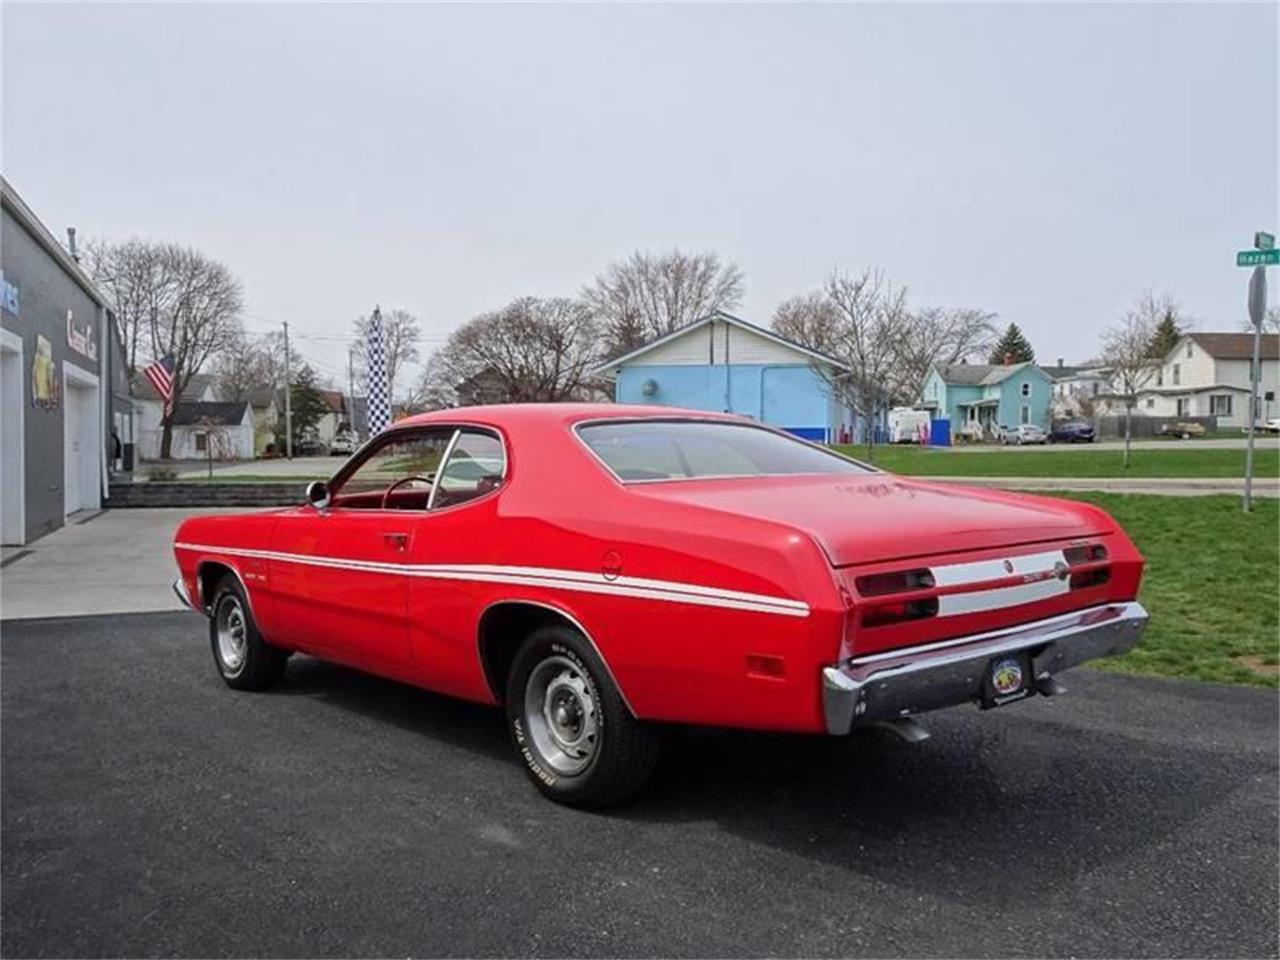 Large Picture of Classic '70 Plymouth Duster located in Hilton New York - $34,850.00 - PX3M